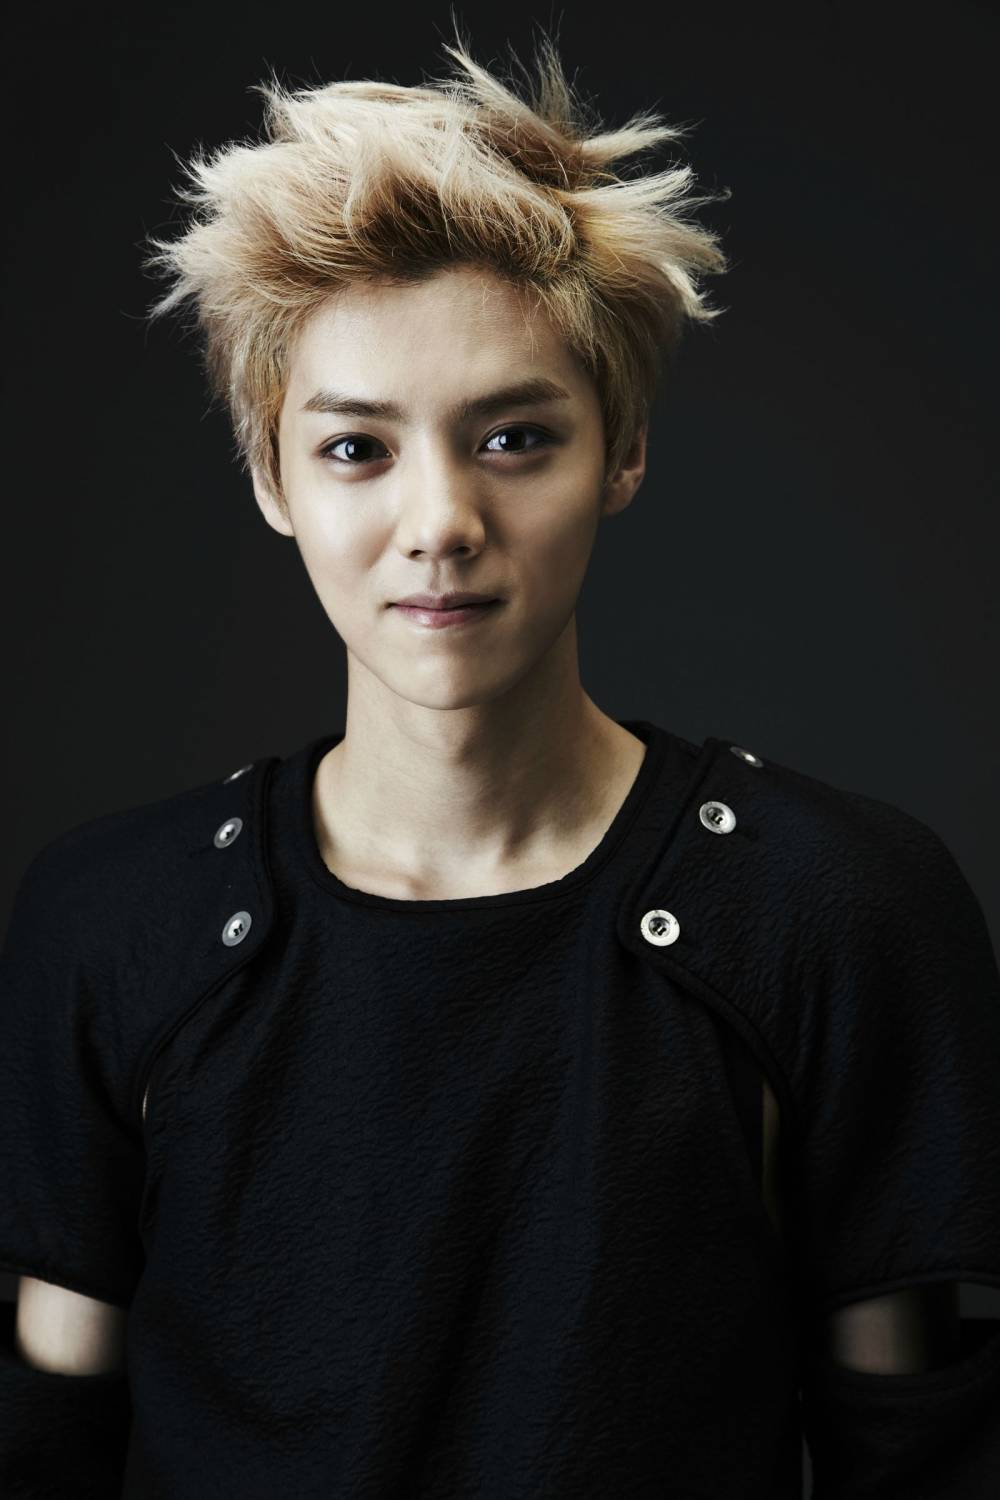 Luhan's father speaks up about Luhan's decision to file a lawsuit